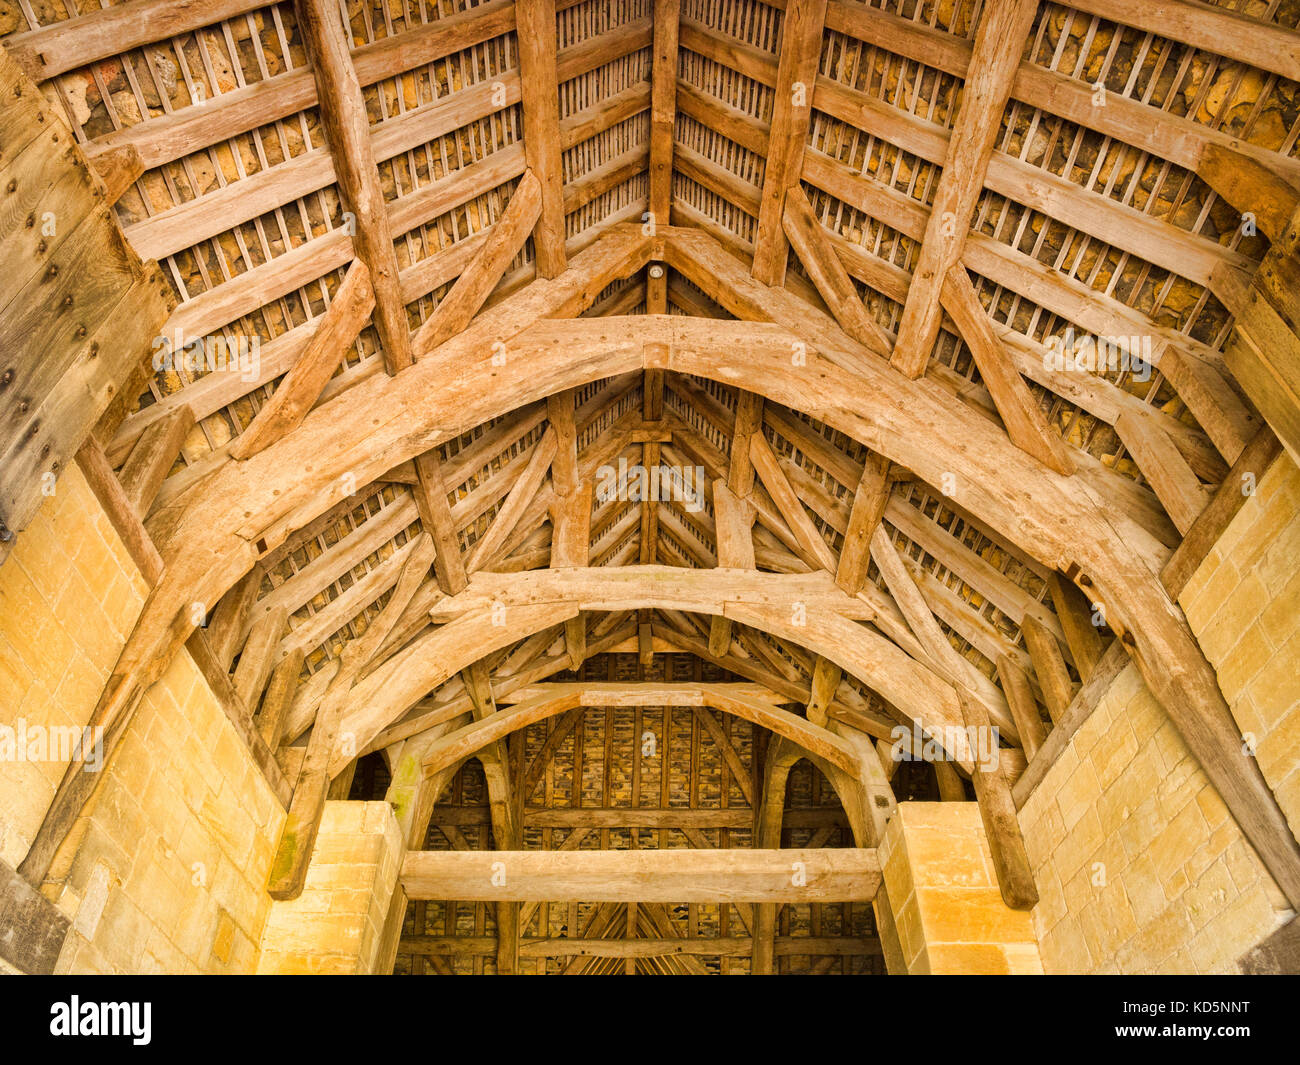 7 July 2017: Bradford on Avon, Somerset, England, UK - The Tithe Barn, built in the early 14th century as part of - Stock Image